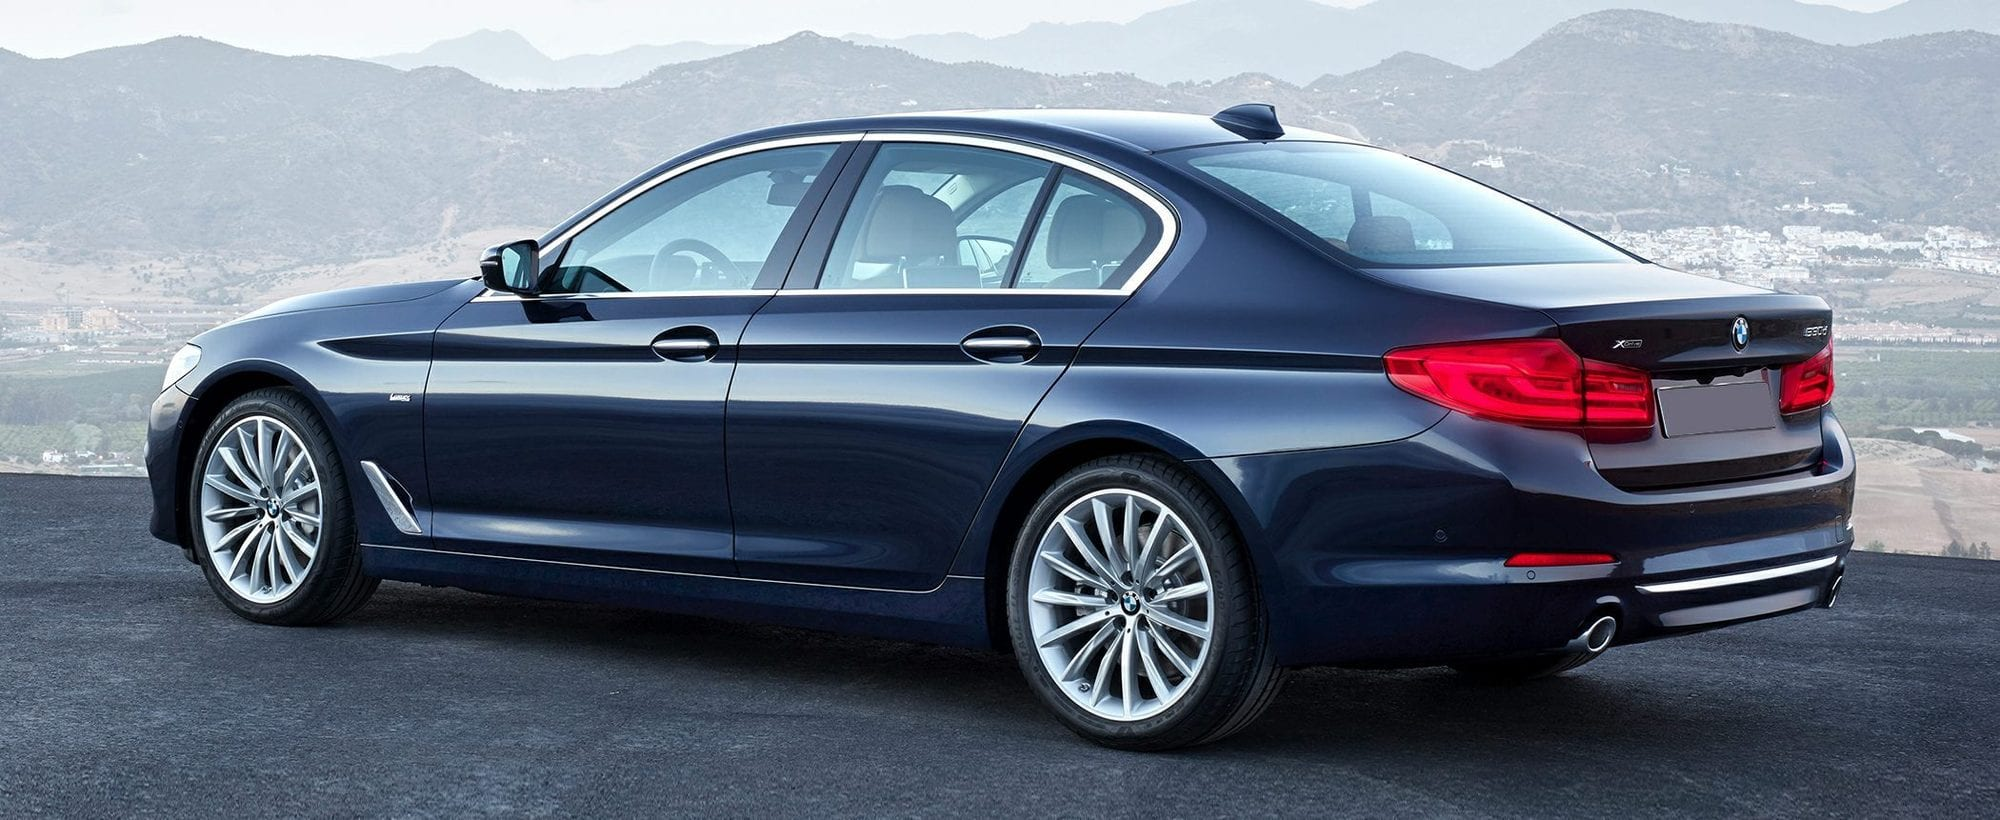 How to Reset Flat Tire Warning BMW 530i